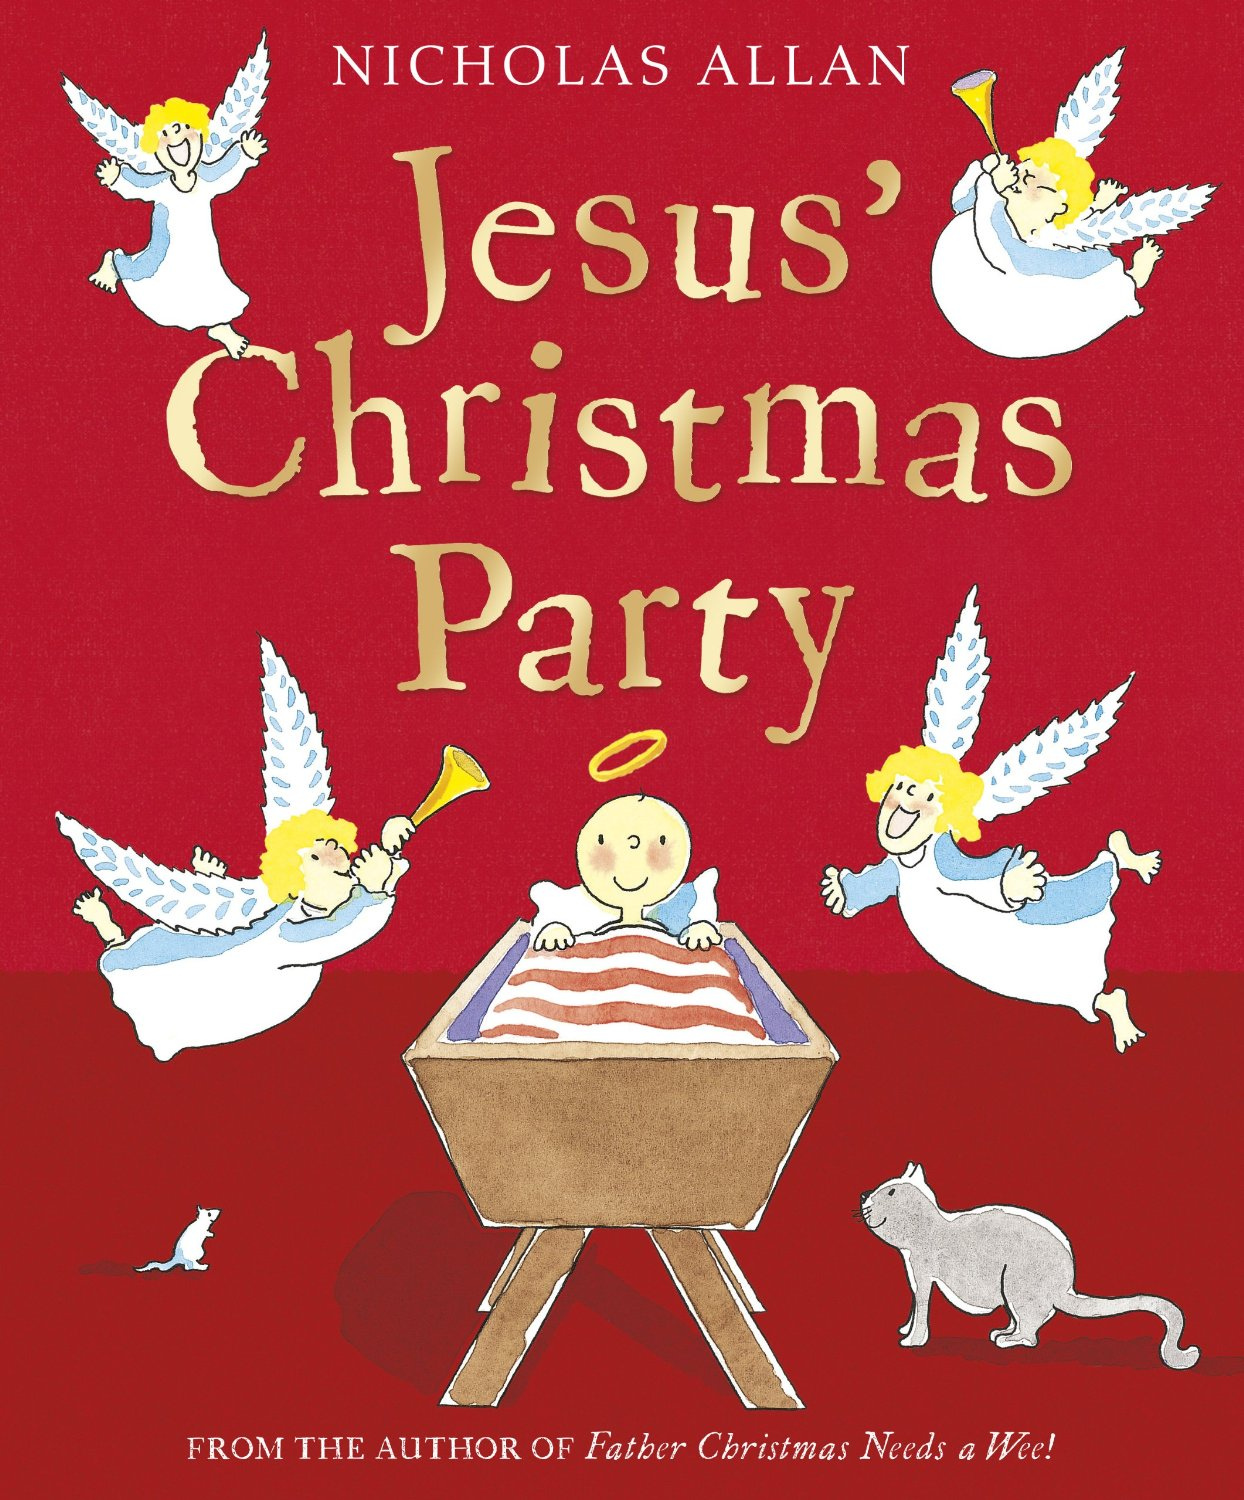 Christmas Children Party: Top 10 Christmas Picture Books (that Feature Jesus